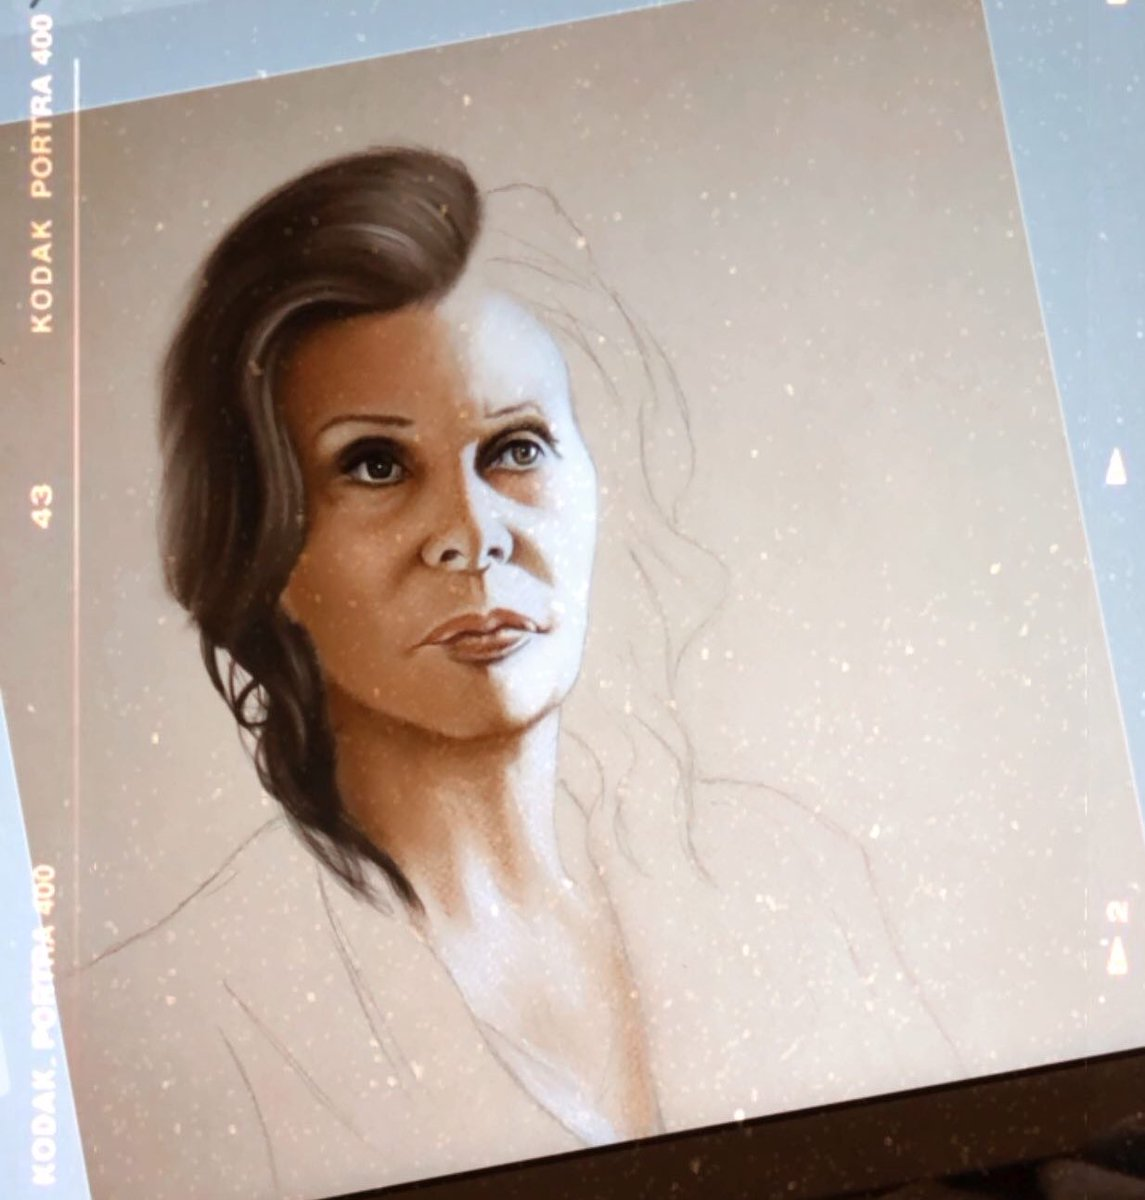 In honor of The Life Ahead, the upcoming Netflix movie starring Sophia Loren and directed by @EdoardoPonti, I'm working on a little drawing. So incredibly excited to see it!  @NetflixNL @NetflixFilm @NetflixIT @netflixpic.twitter.com/LmyzRIRYlH